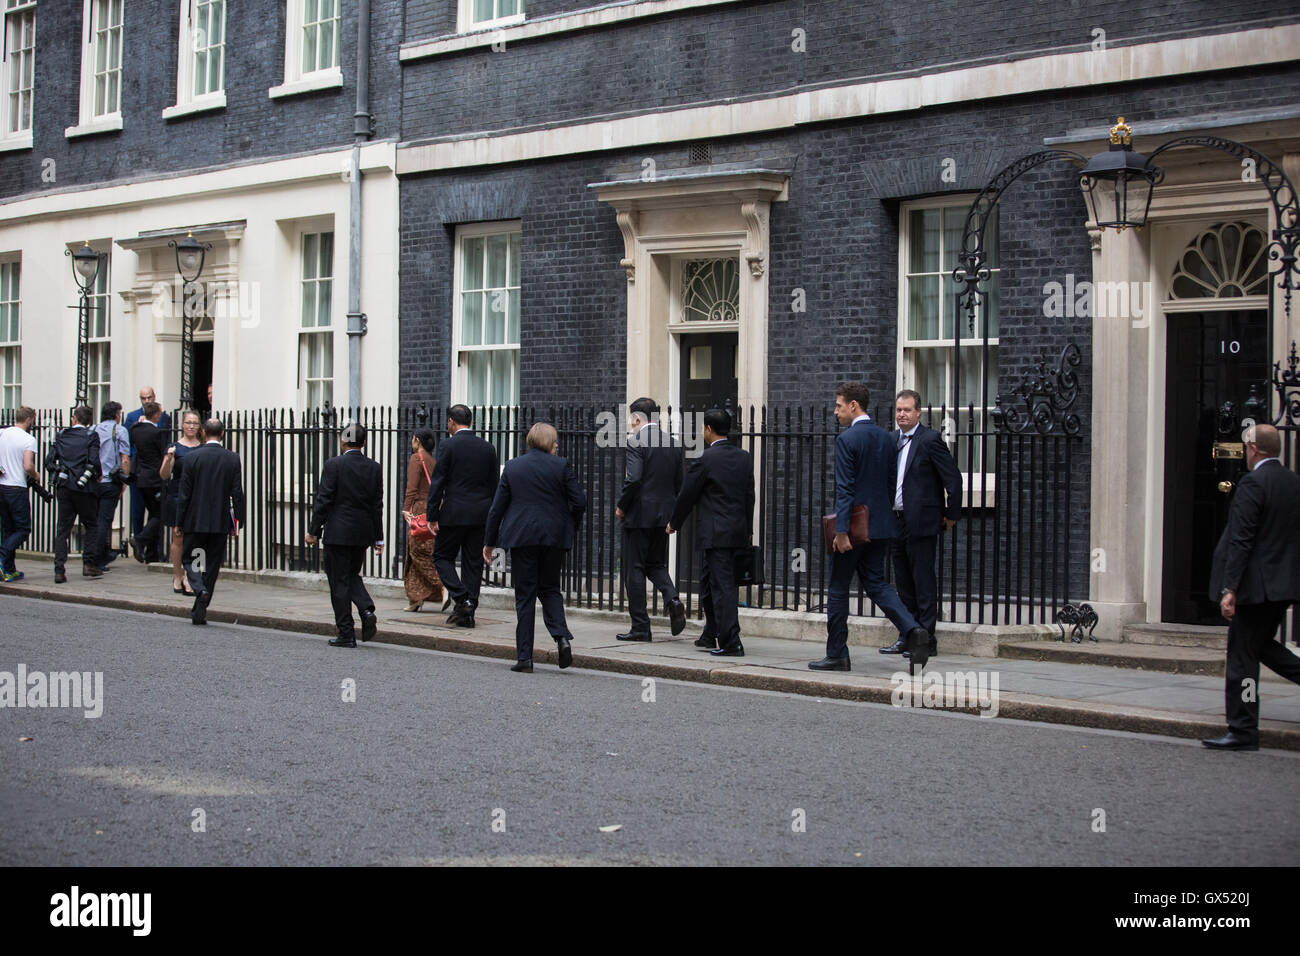 London, UK. The delegation from Myanmar accompanying Aung San Suu Kyi moves along Downing Street to No. 11 for discussions. - Stock Image